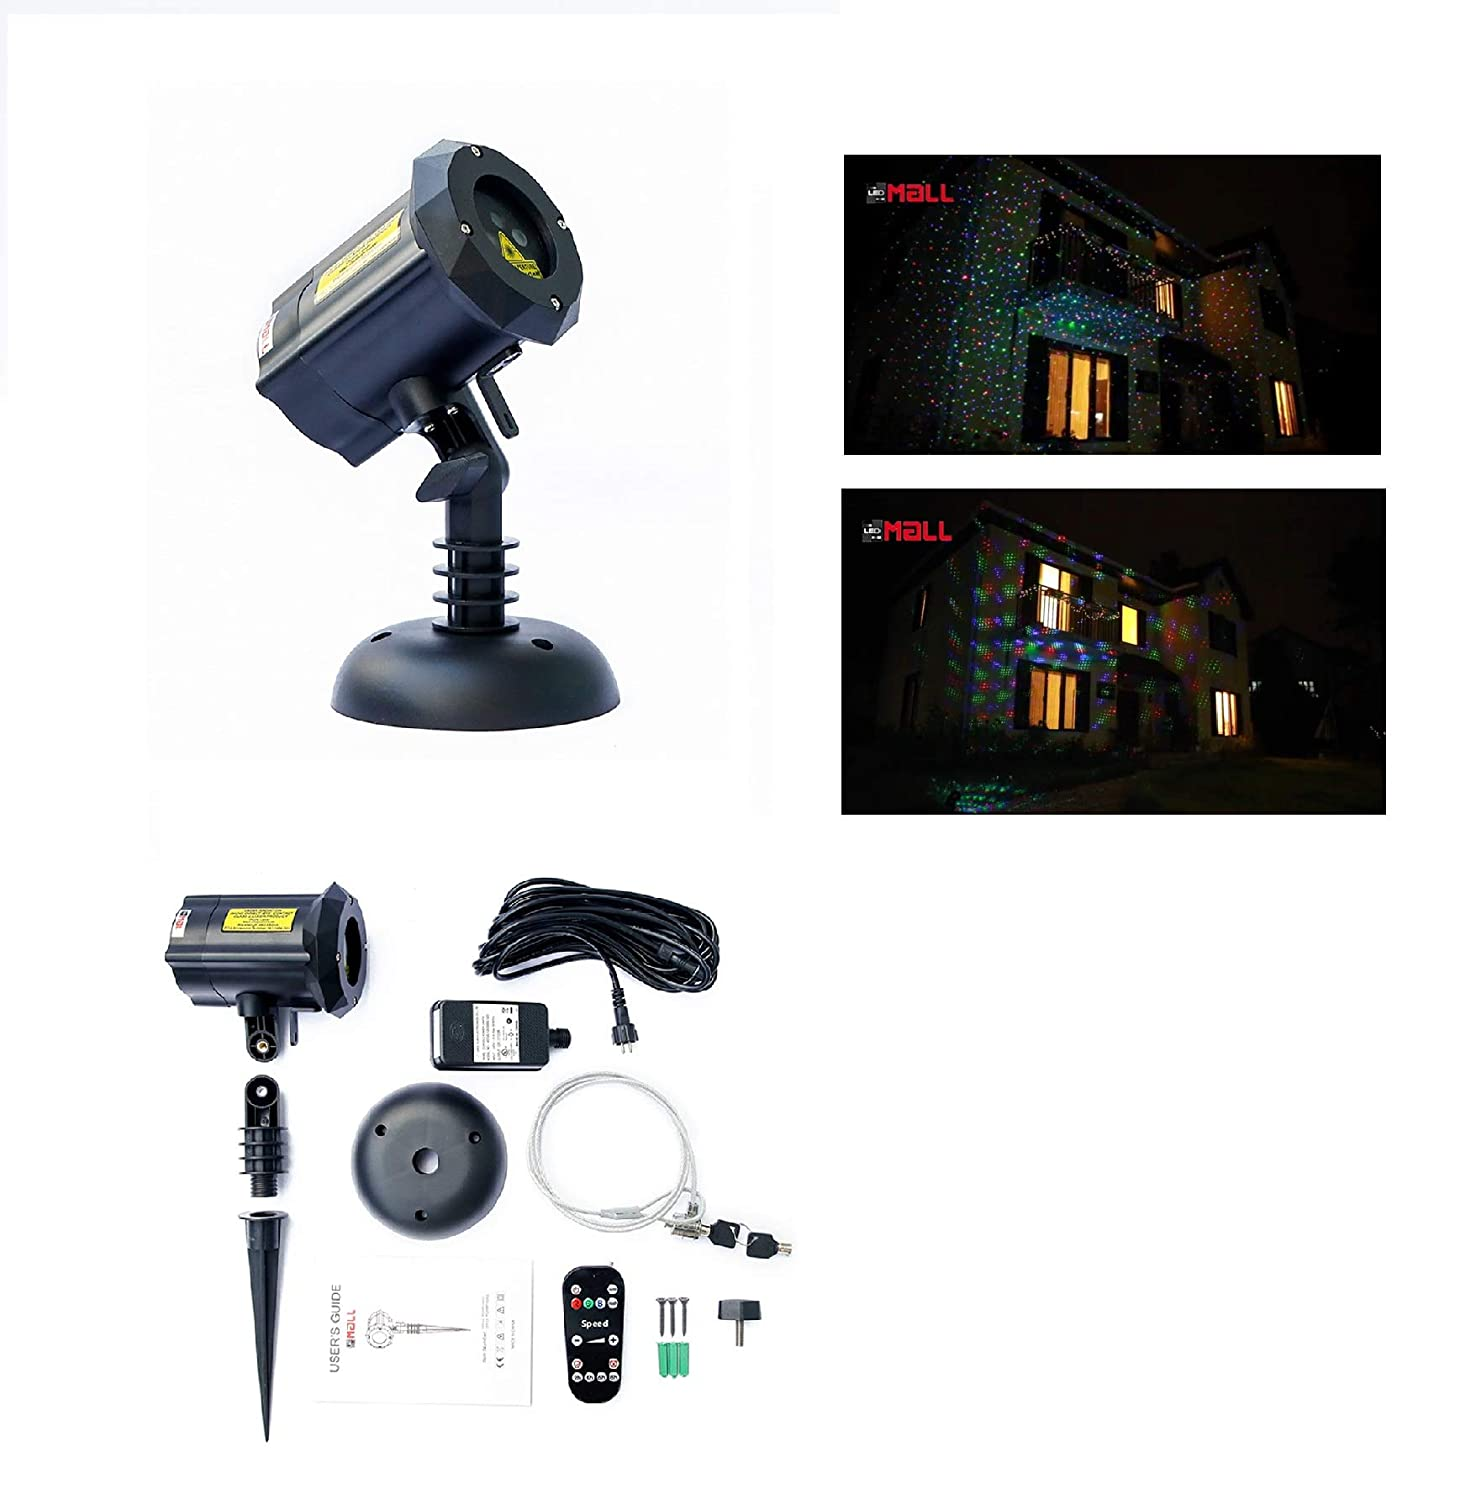 LedMAll® Moving Firefly RGB Outdoor Garden Laser Christmas Lights with RF Remote Control and Security Lock